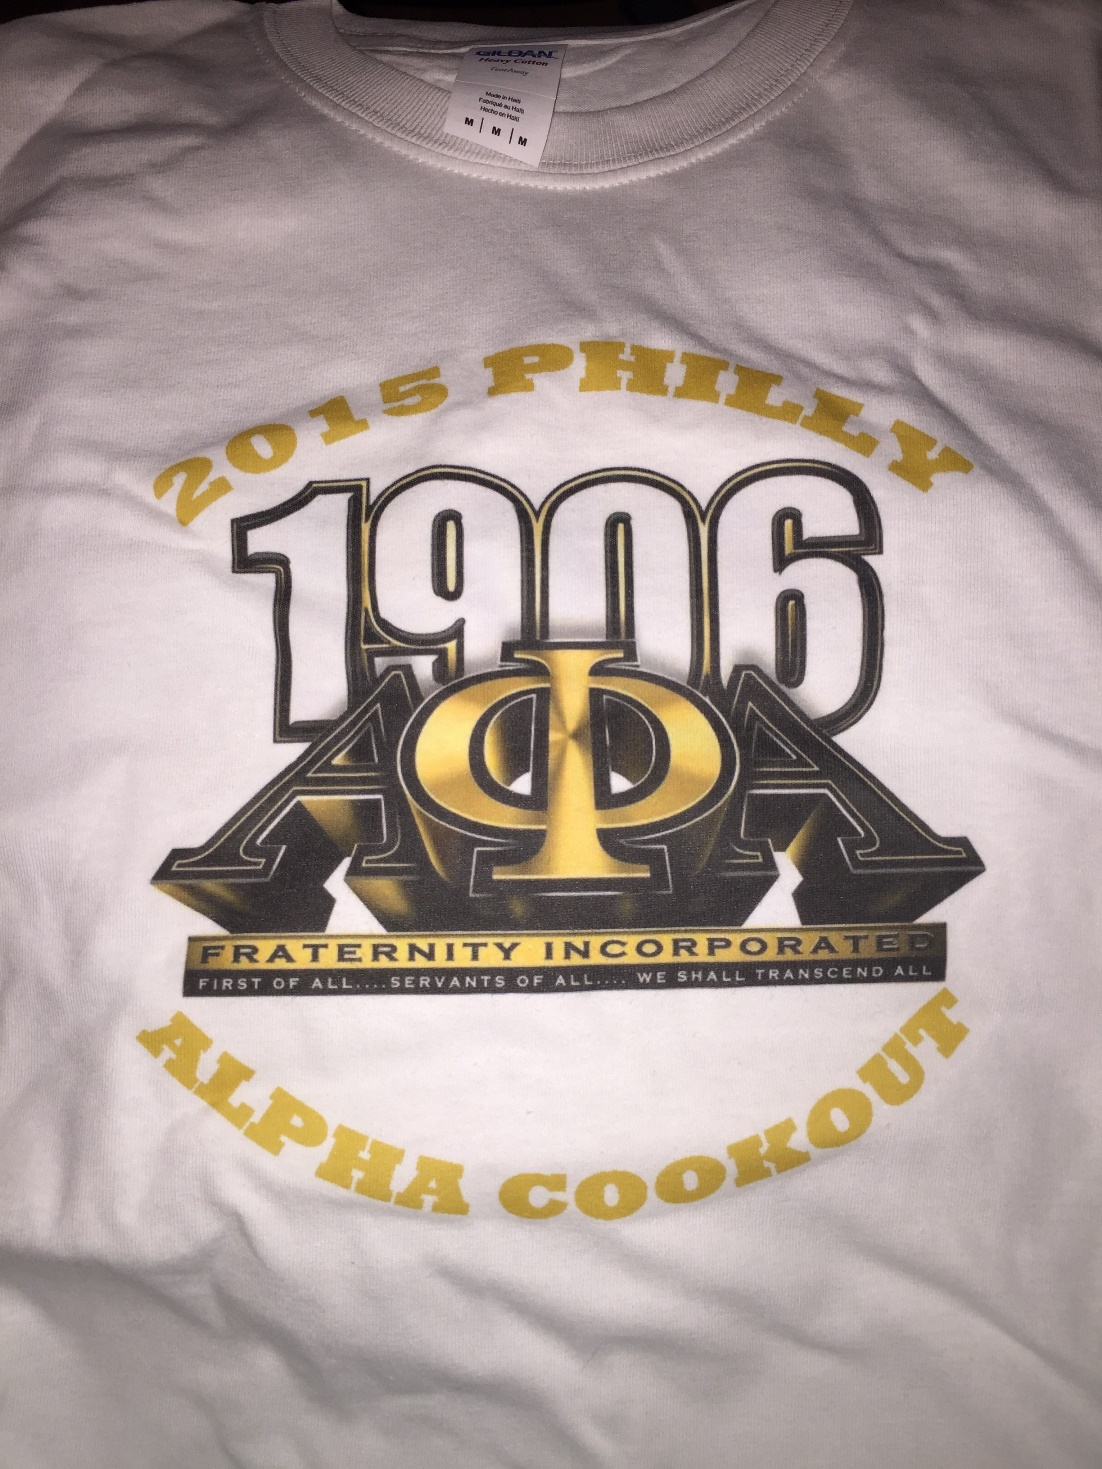 2015 Philly Alpha Cookout T-Shirt